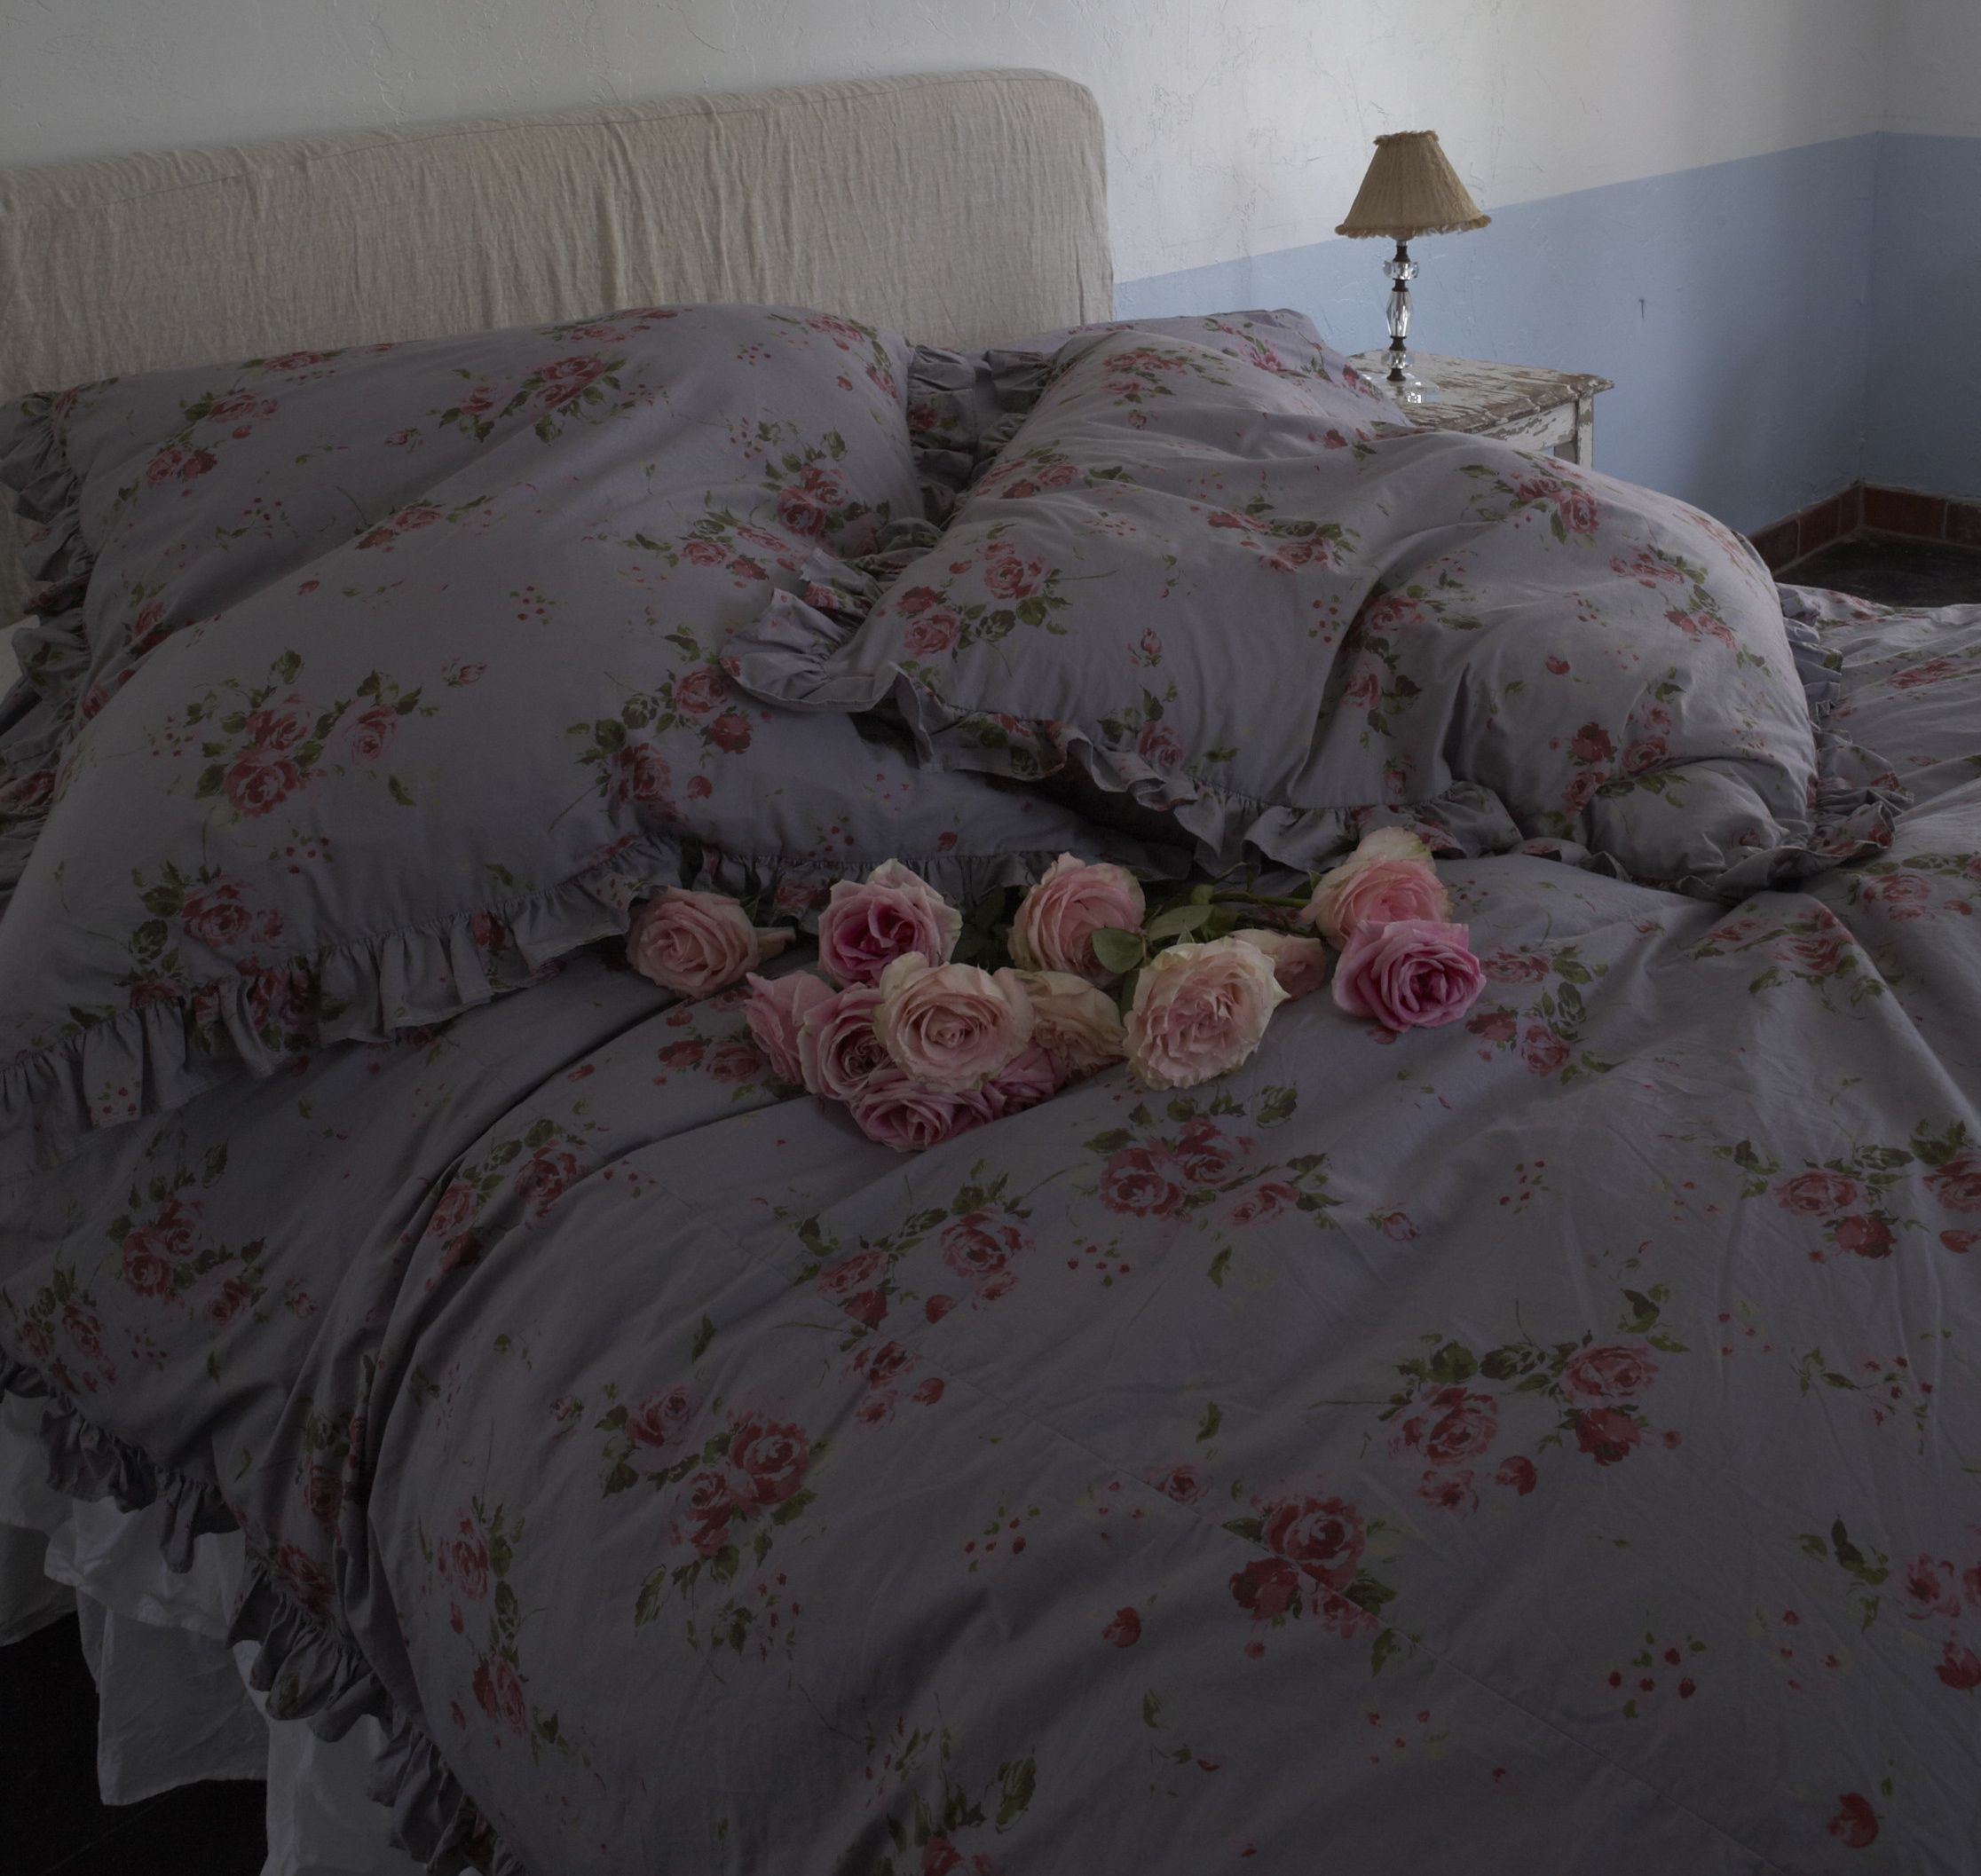 Somerset overdyed Bedding Collection from Rachel Ashwell Shabby Chic Couture stores